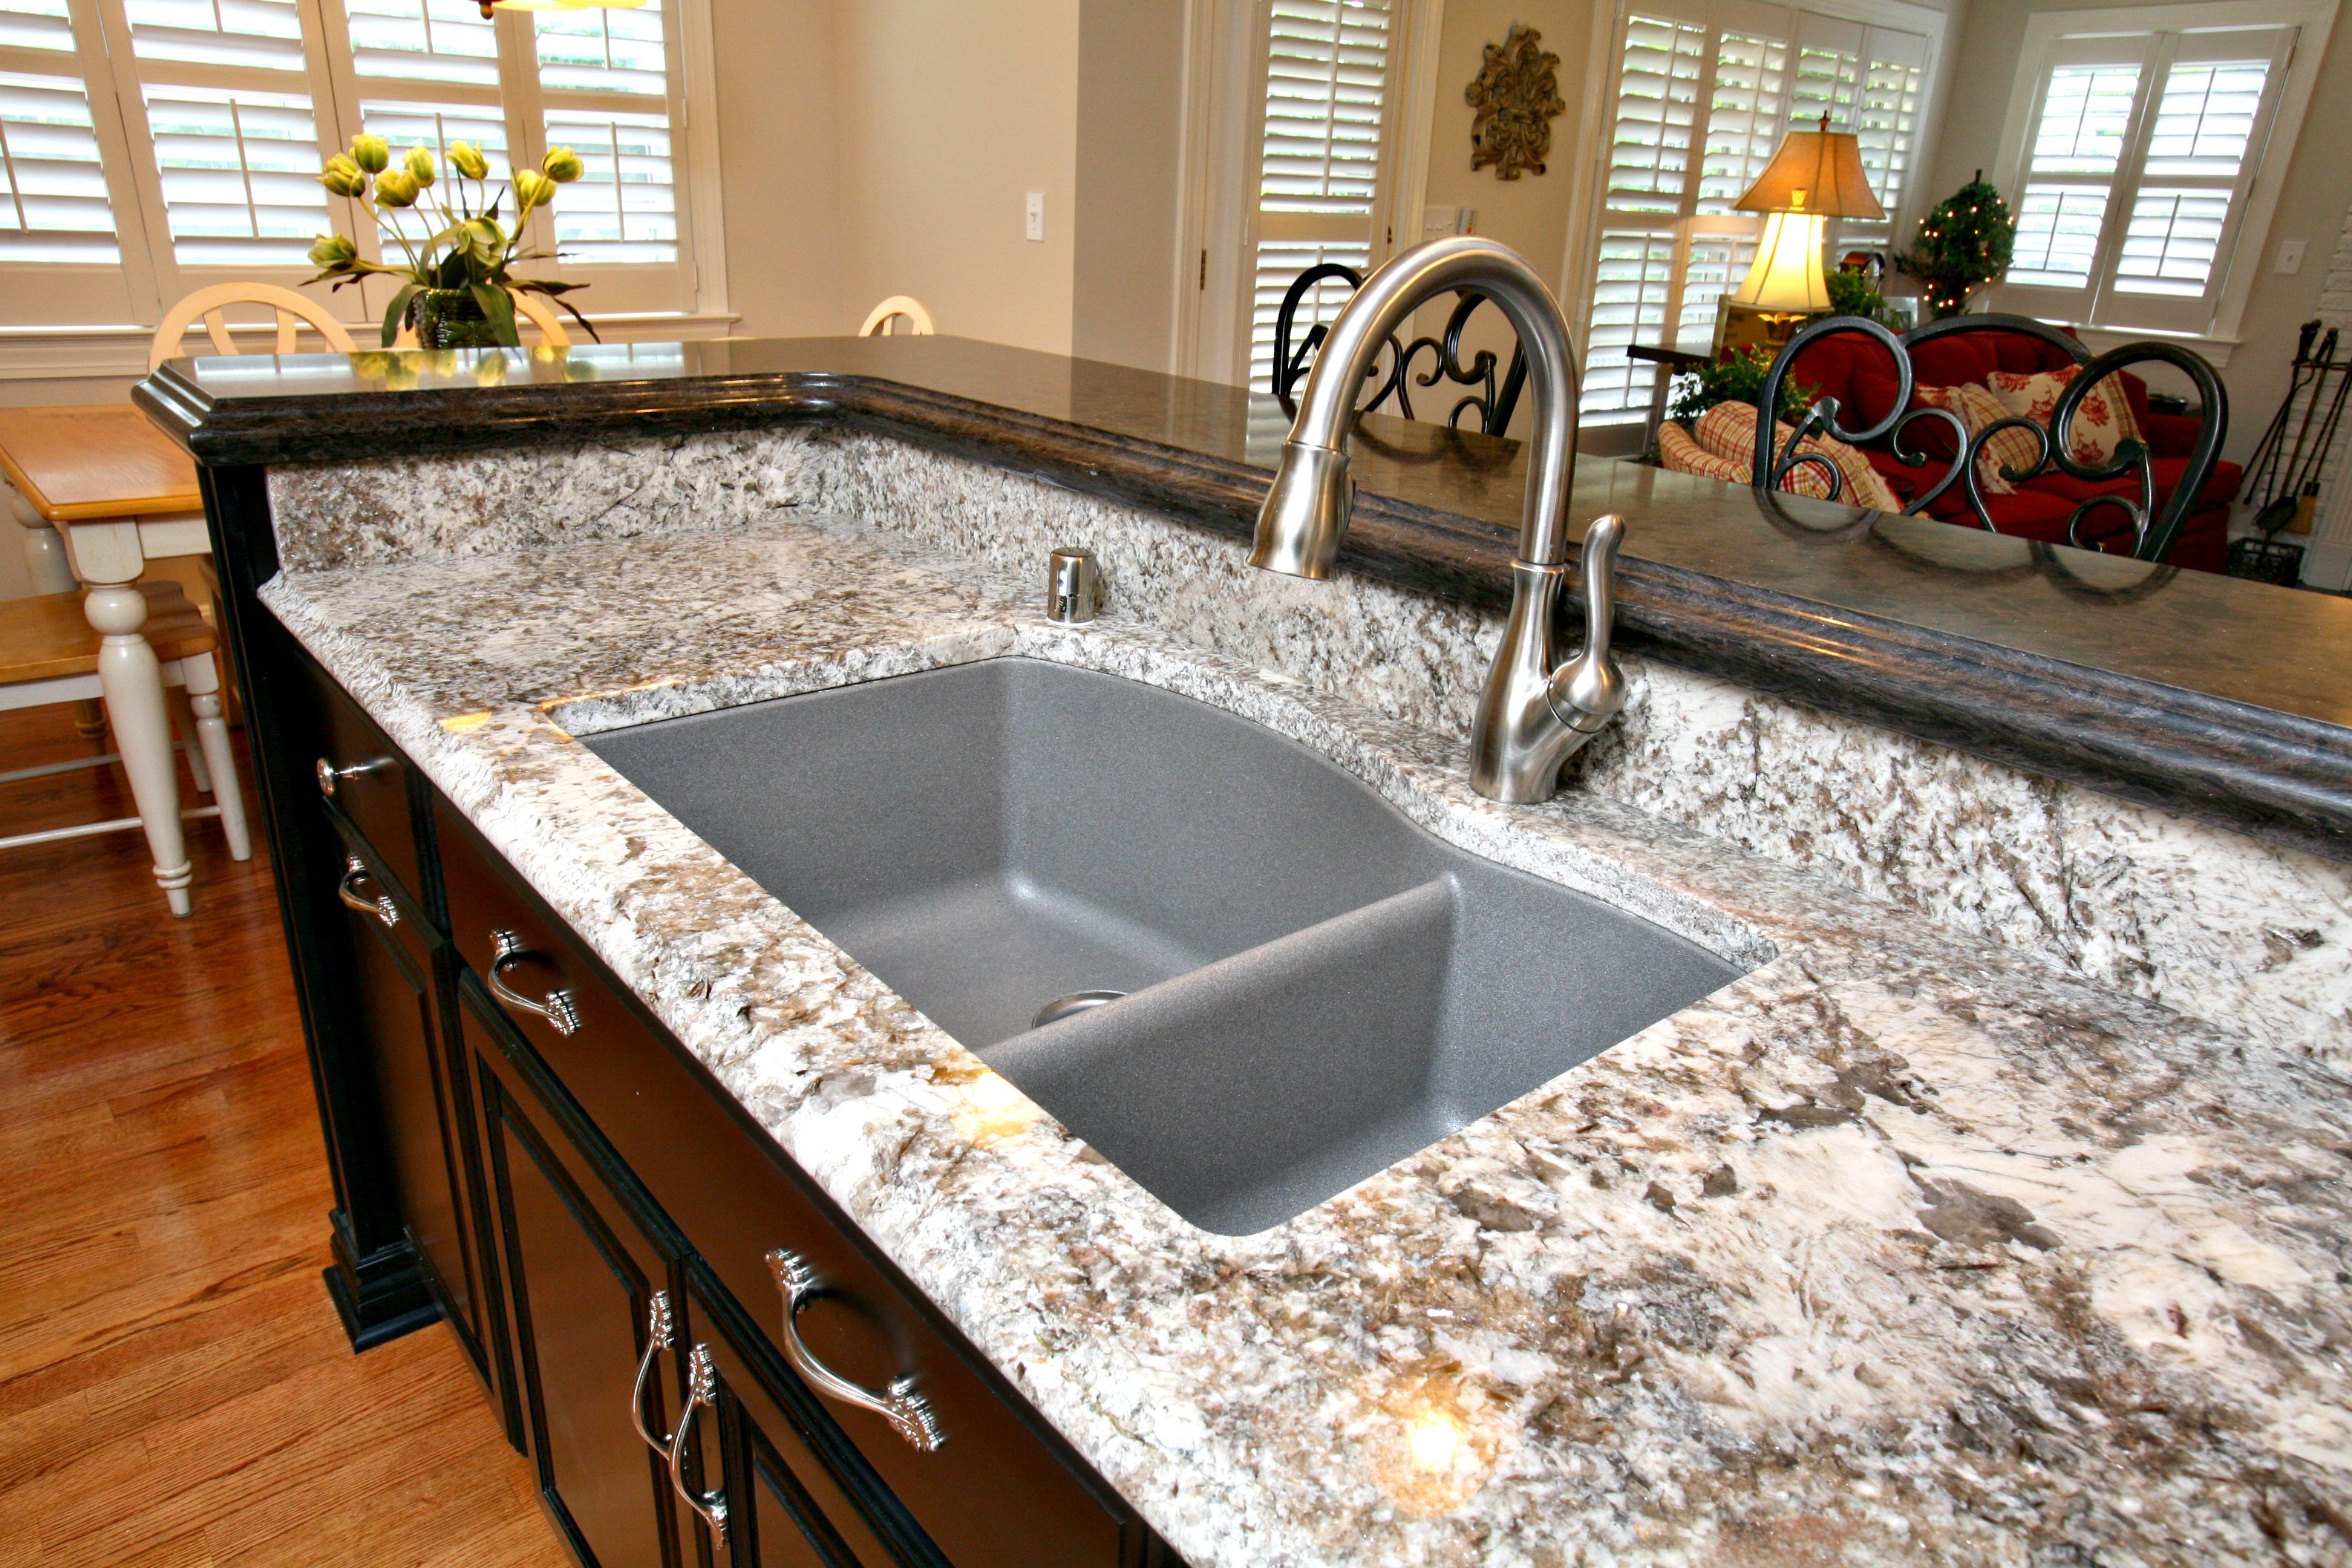 composite countertops kitchen cleveland cabinets pergaminho granite with sink agdesigns